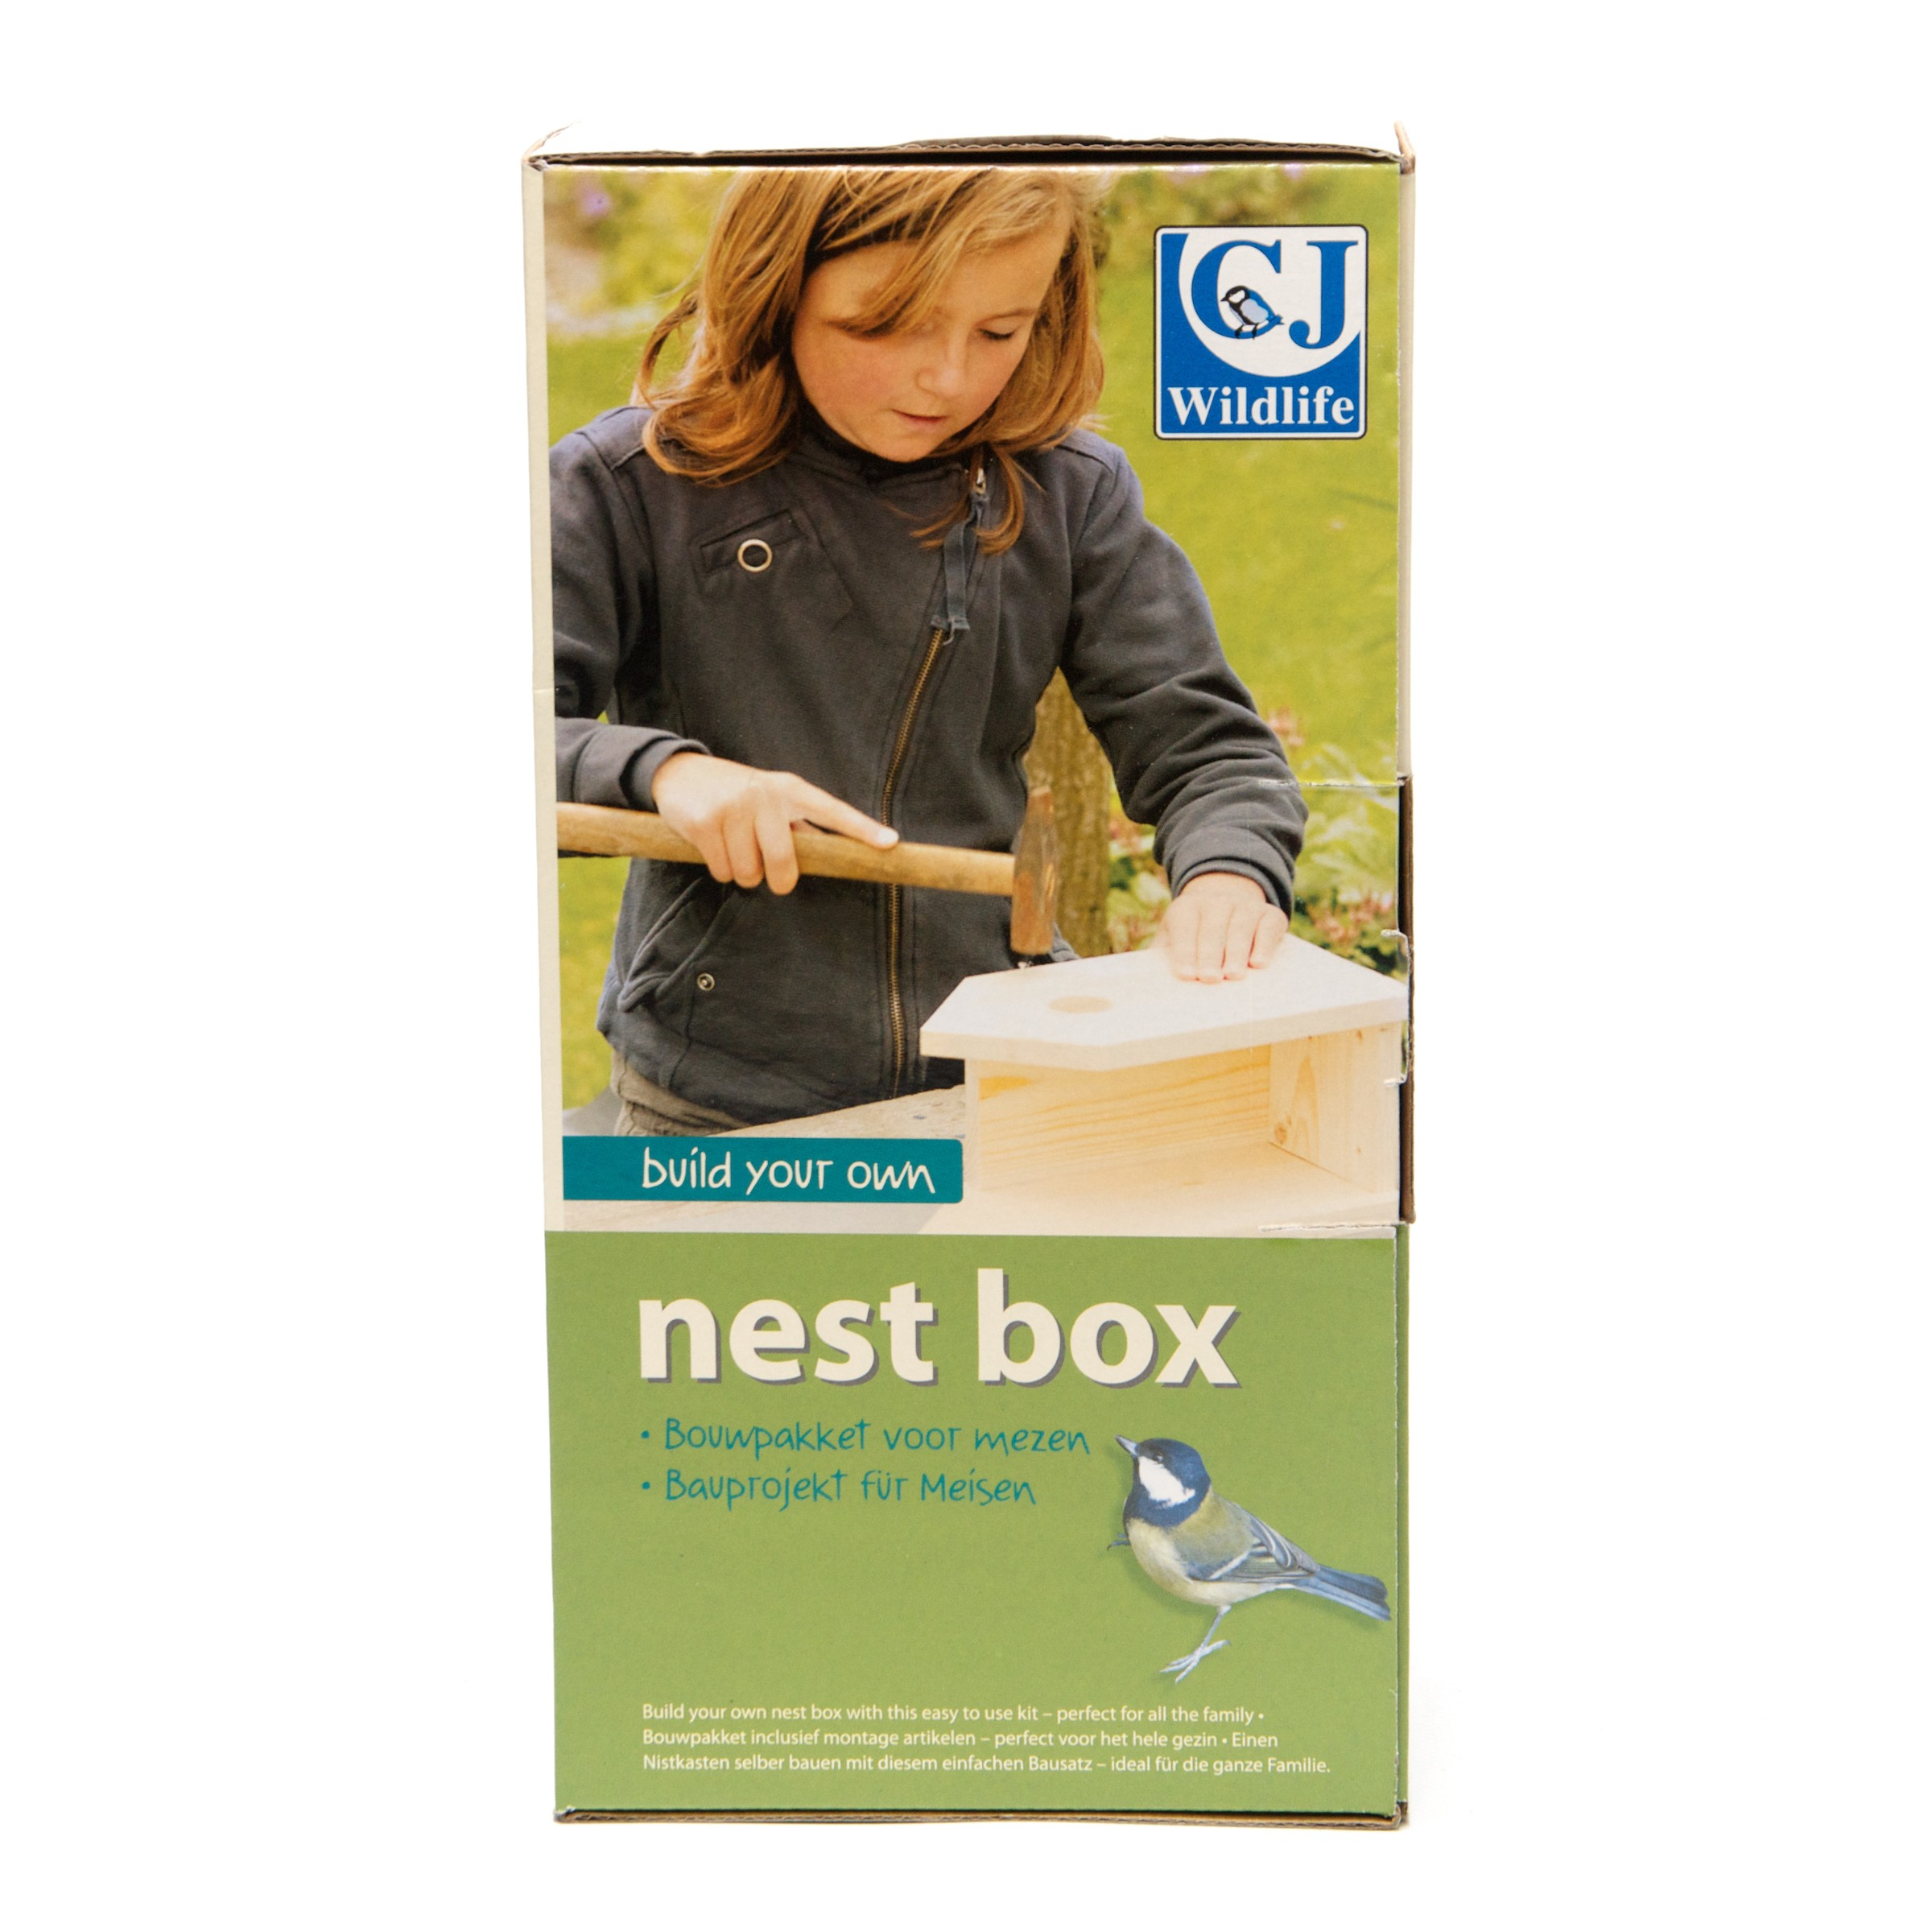 Build your own nest box buy online at vine house farm for Build your own home online